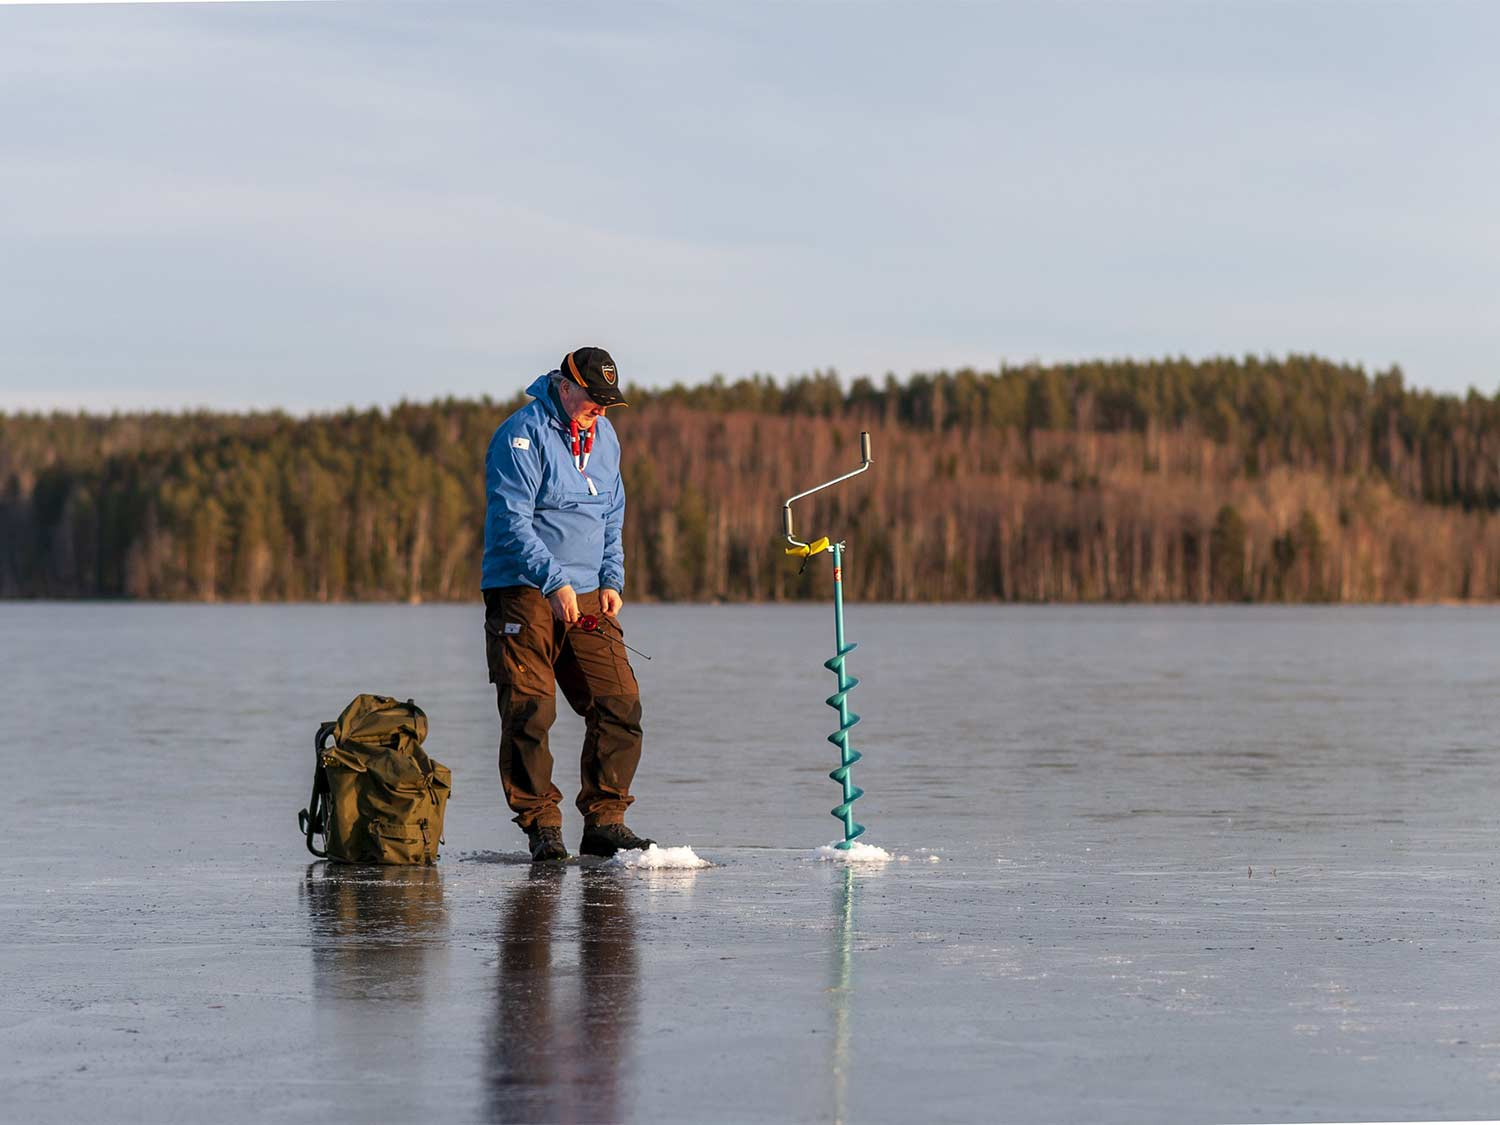 A man walks on a frozen lake, using an auger to drill a hole into the ice.